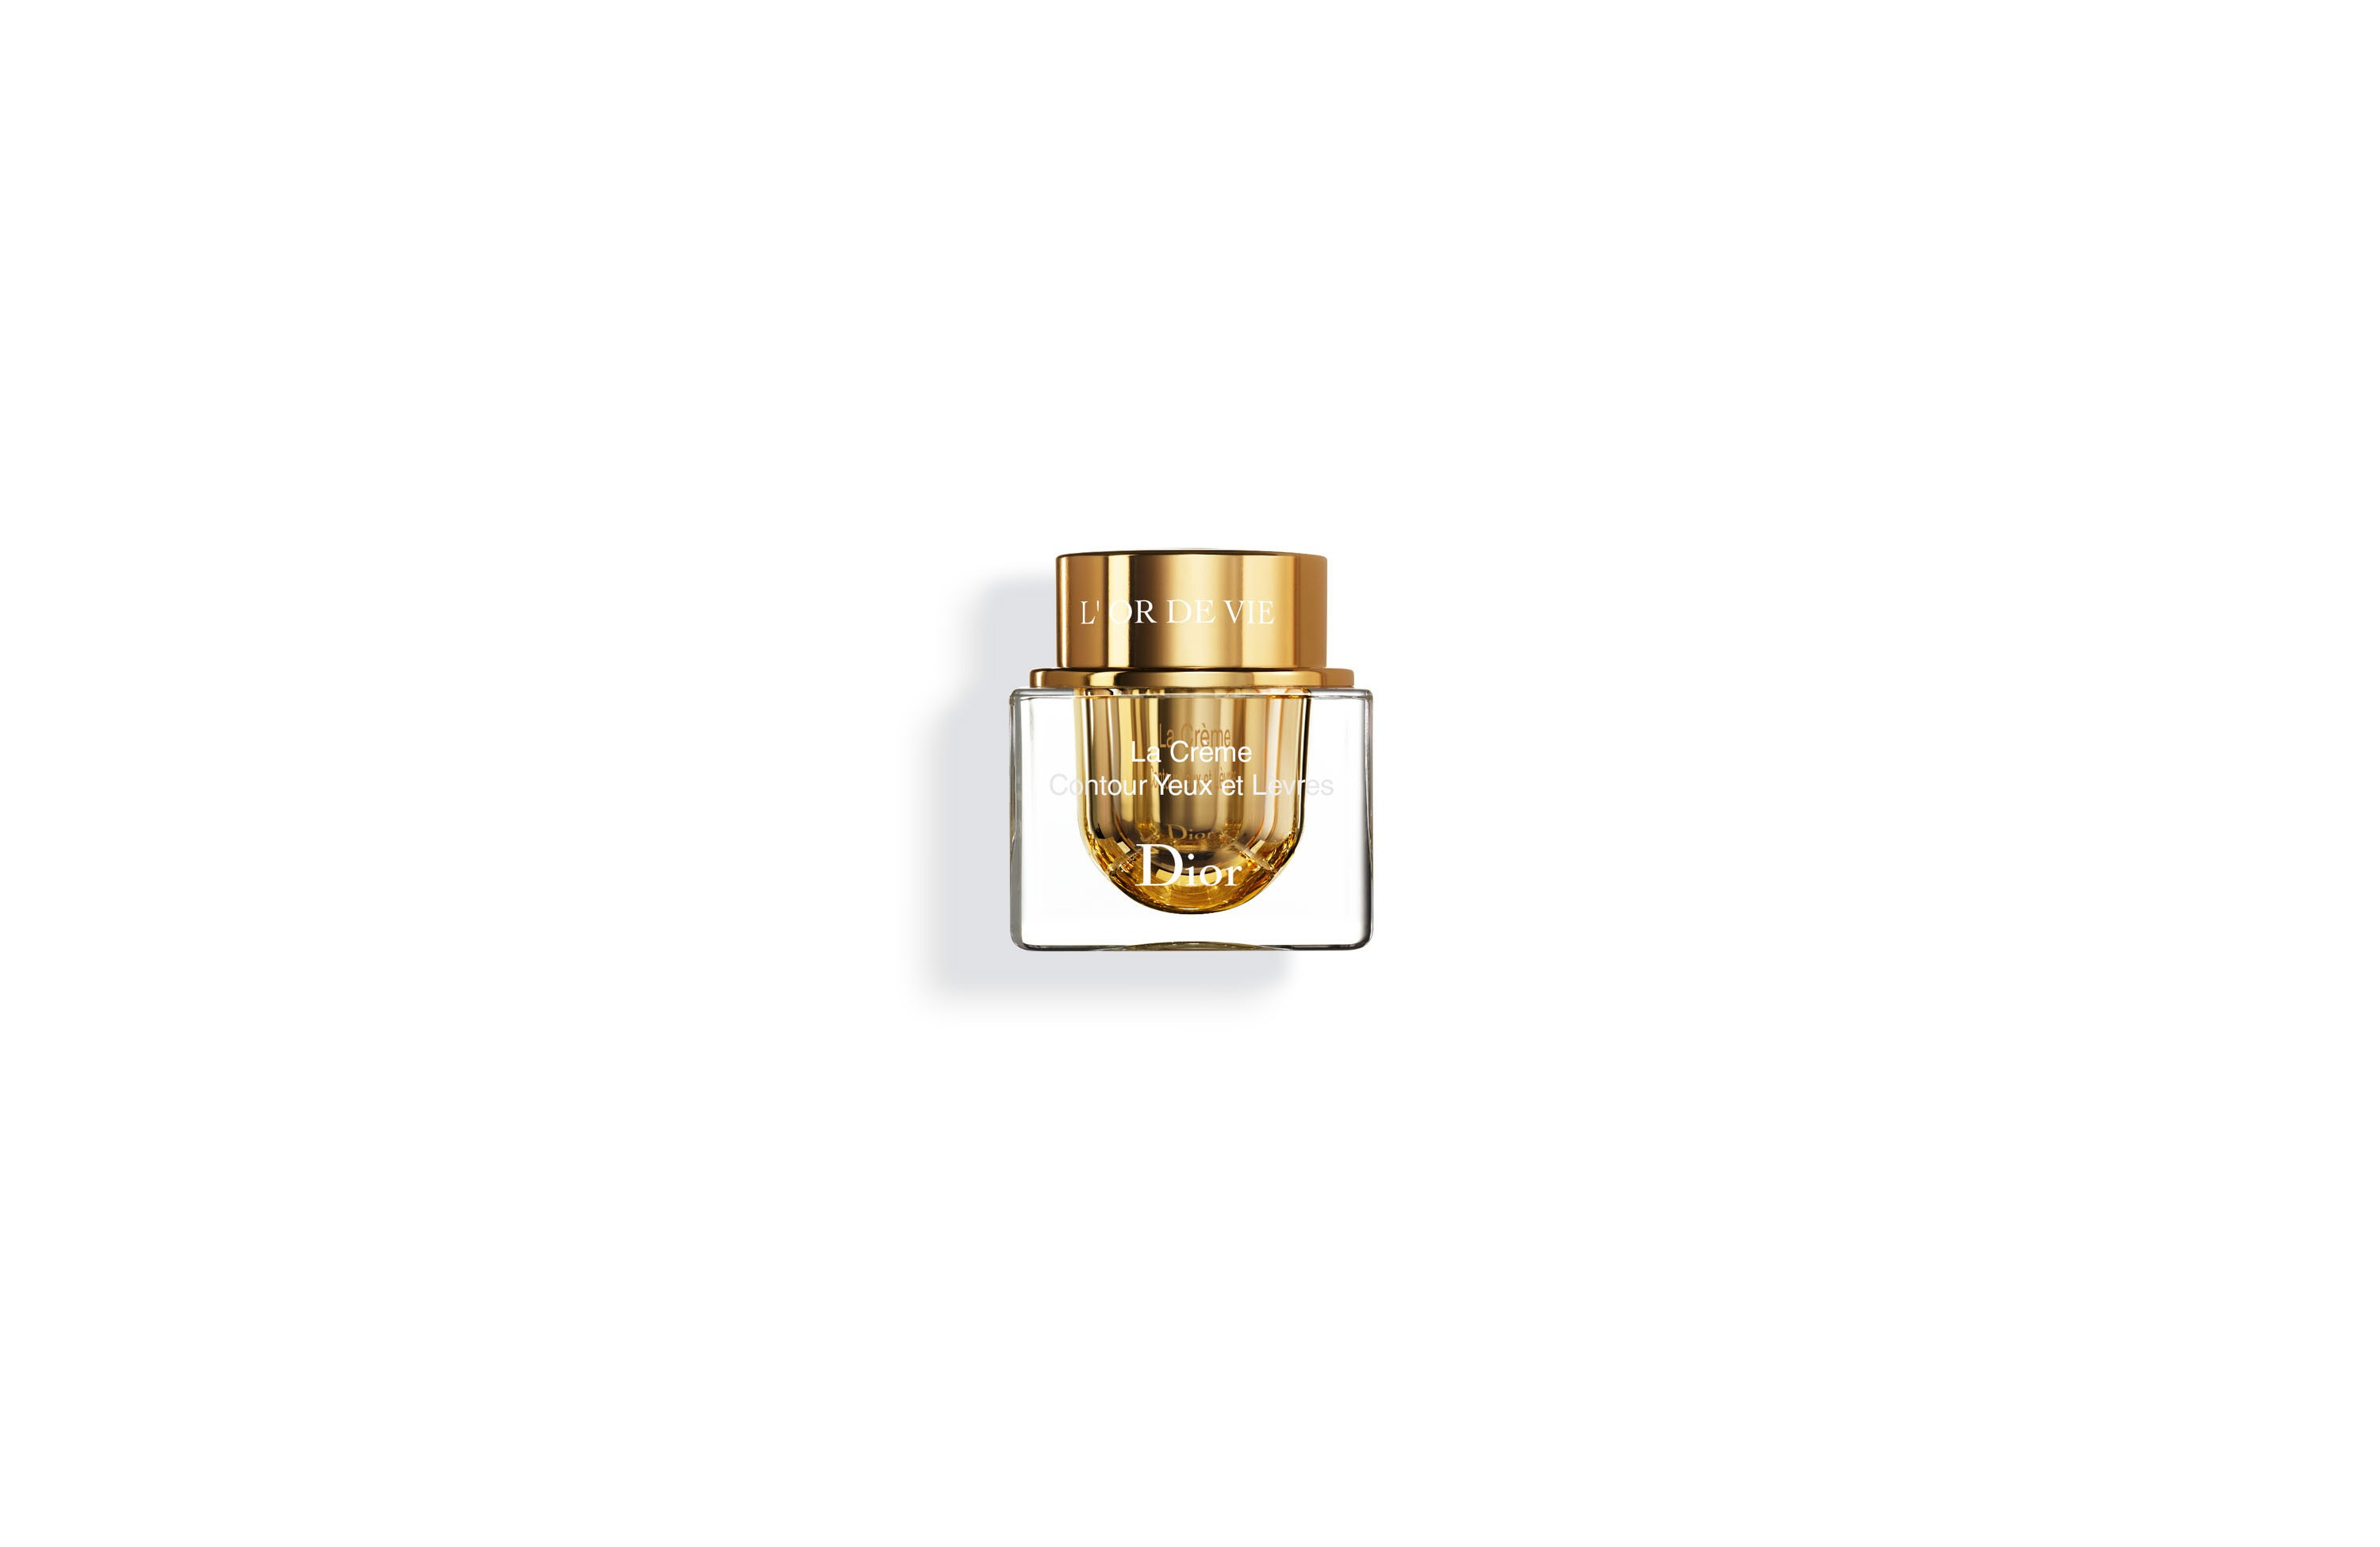 Dior L'Or De Vie Eye And Lip Contour Cream